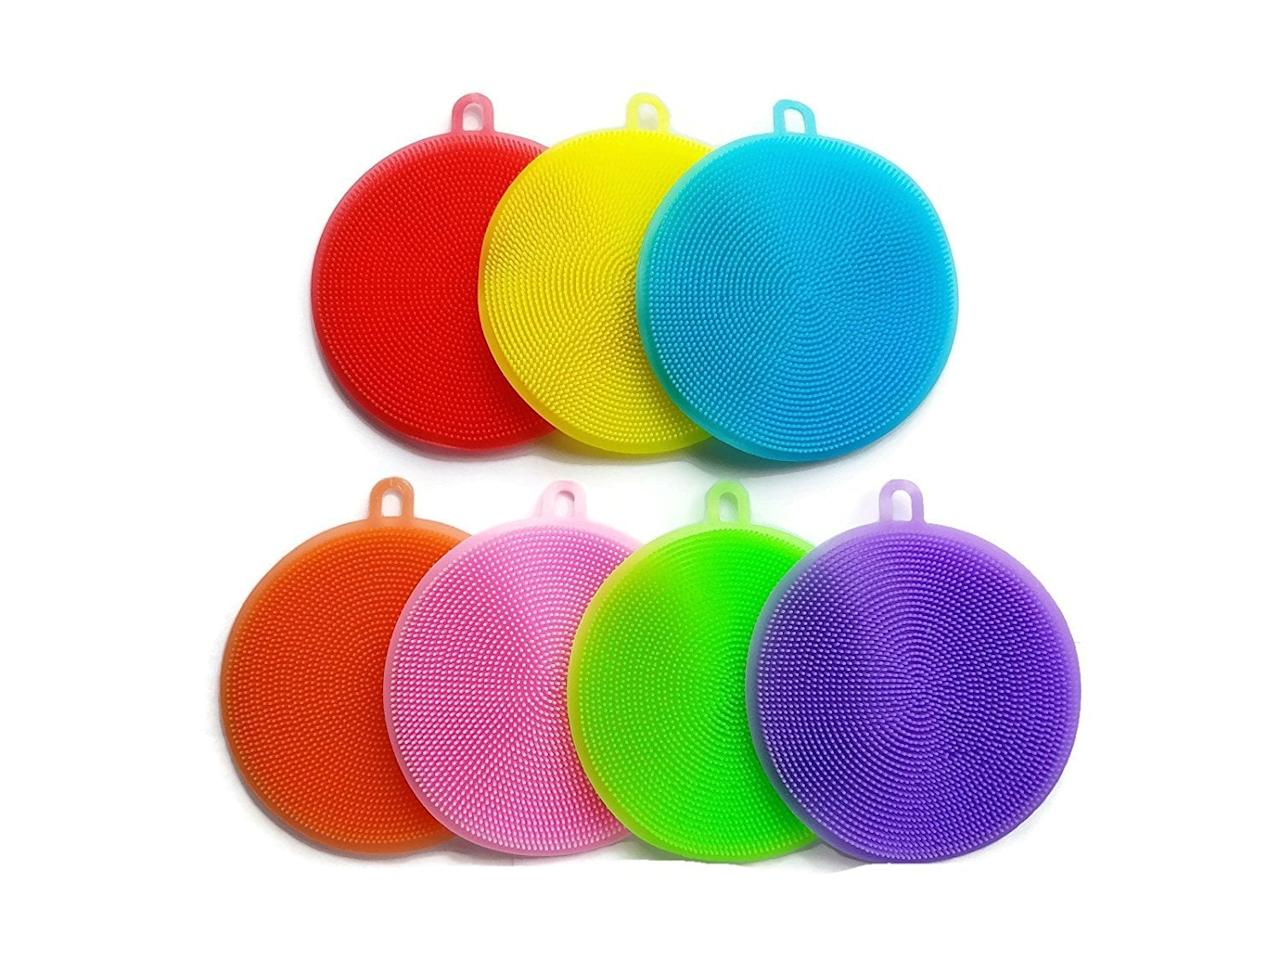 """<p>Traditional sponges can be filled with dirt and bacteria, so try washing your dishes with this <product href=""""https://www.amazon.com/Silicone-Food-Grade-Antibacterial-Multipurpose-Antimicrobial/dp/B07KV7FHC6/ref=sr_1_37?s=home-garden&amp;ie=UTF8&amp;qid=1546630876&amp;sr=1-37&amp;keywords=best+kitchen+gadgets"""" target=""""_blank"""" class=""""ga-track"""" data-ga-category=""""internal click"""" data-ga-label=""""https://www.amazon.com/Silicone-Food-Grade-Antibacterial-Multipurpose-Antimicrobial/dp/B07KV7FHC6/ref=sr_1_37?s=home-garden&amp;ie=UTF8&amp;qid=1546630876&amp;sr=1-37&amp;keywords=best+kitchen+gadgets"""" data-ga-action=""""body text link"""">Silicone Sponge Dish Antibacterial Washing Brush</product> ($12).</p>"""